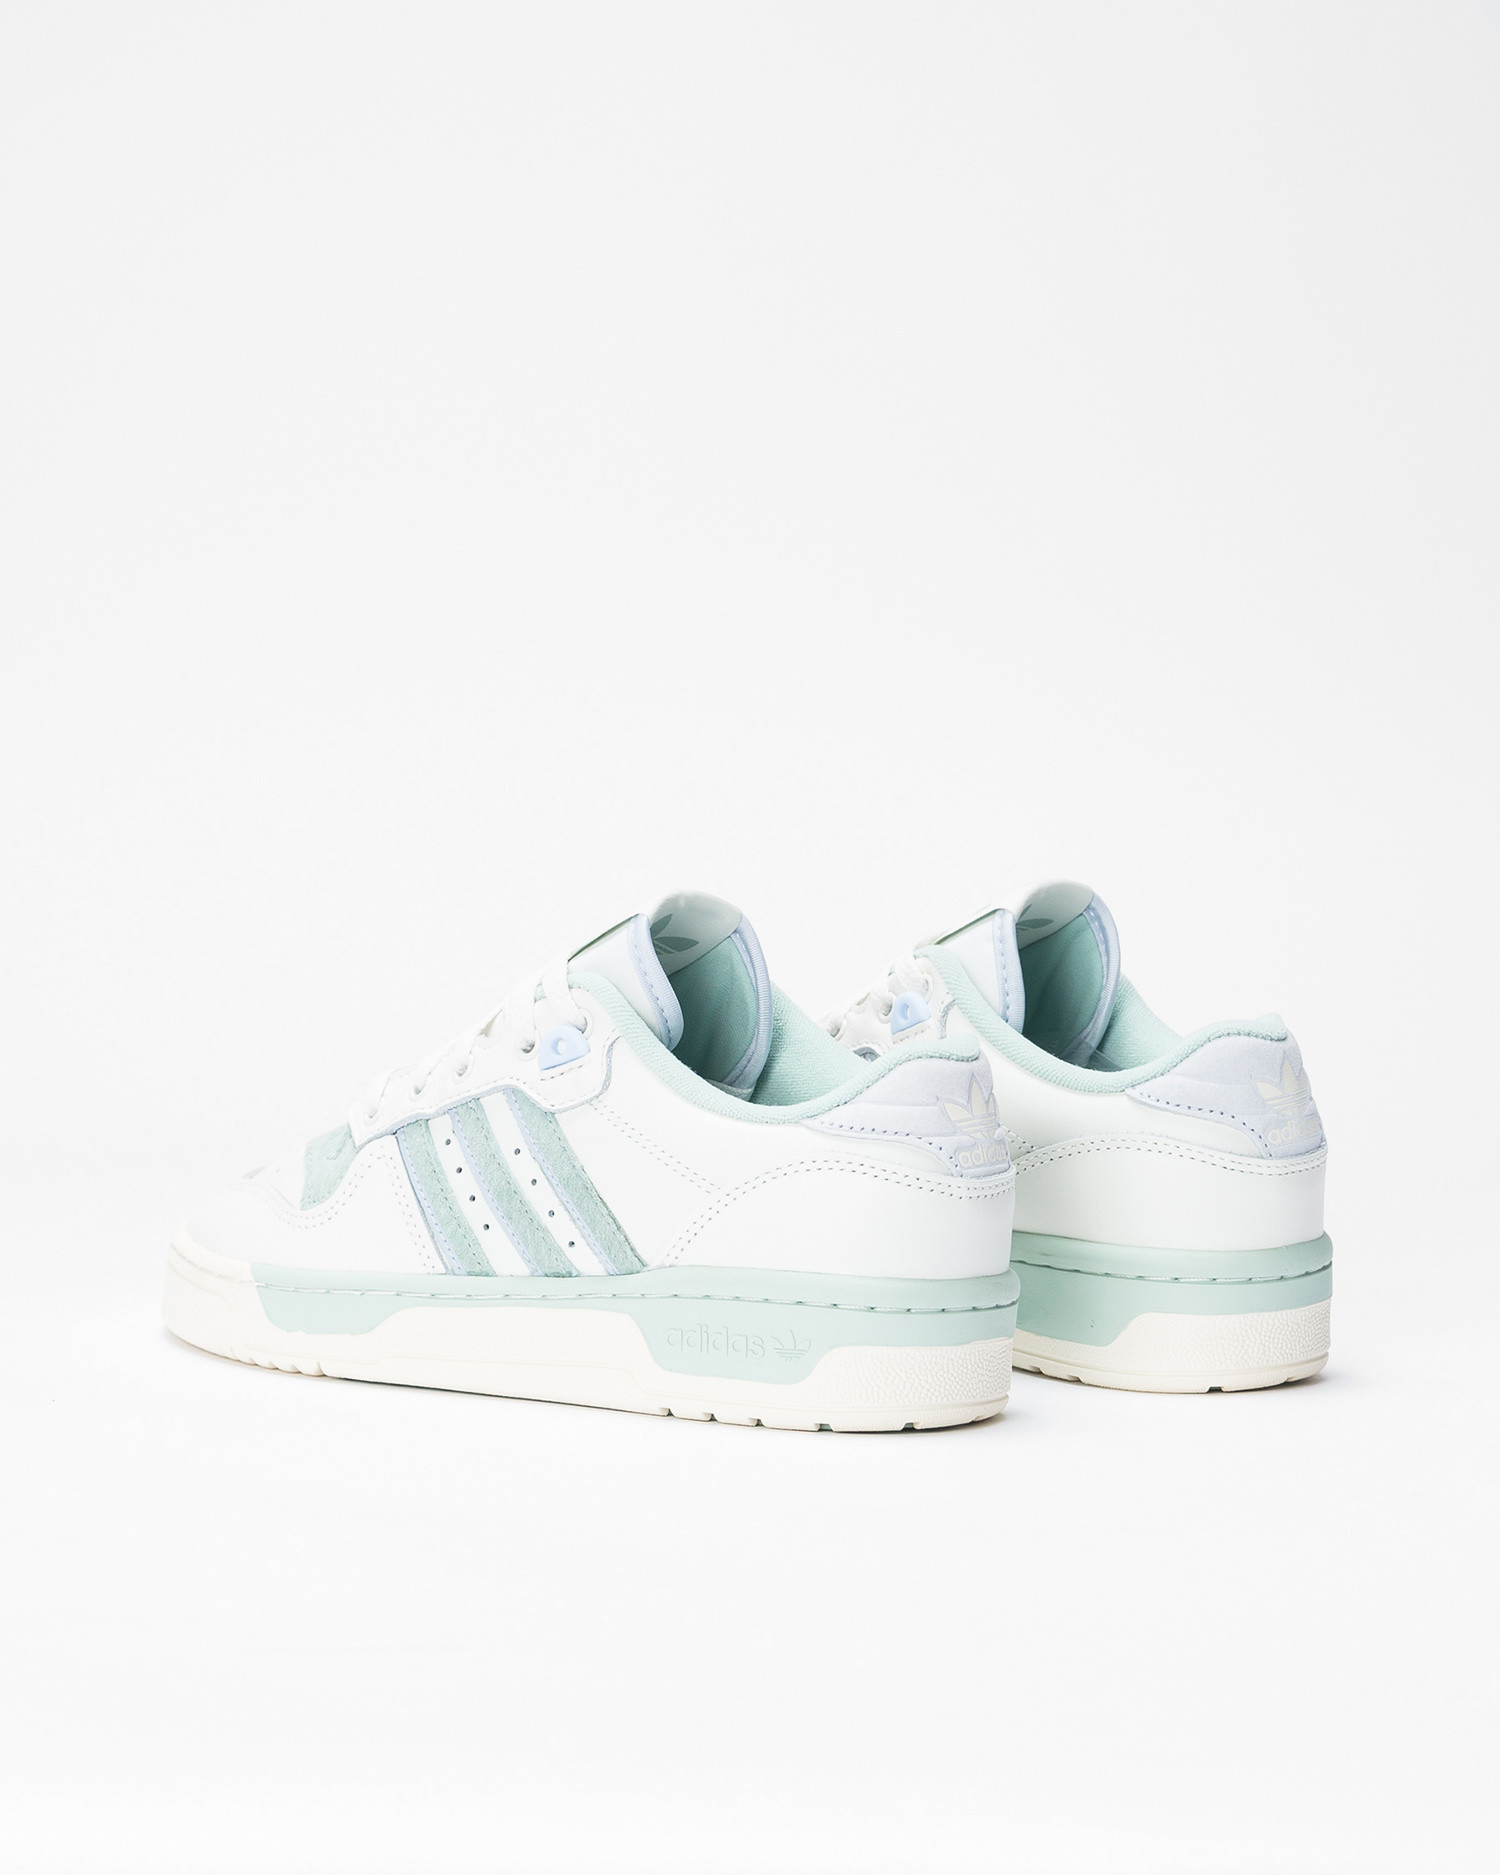 Adidas Rivalry Low Cloud White/Off white/Green